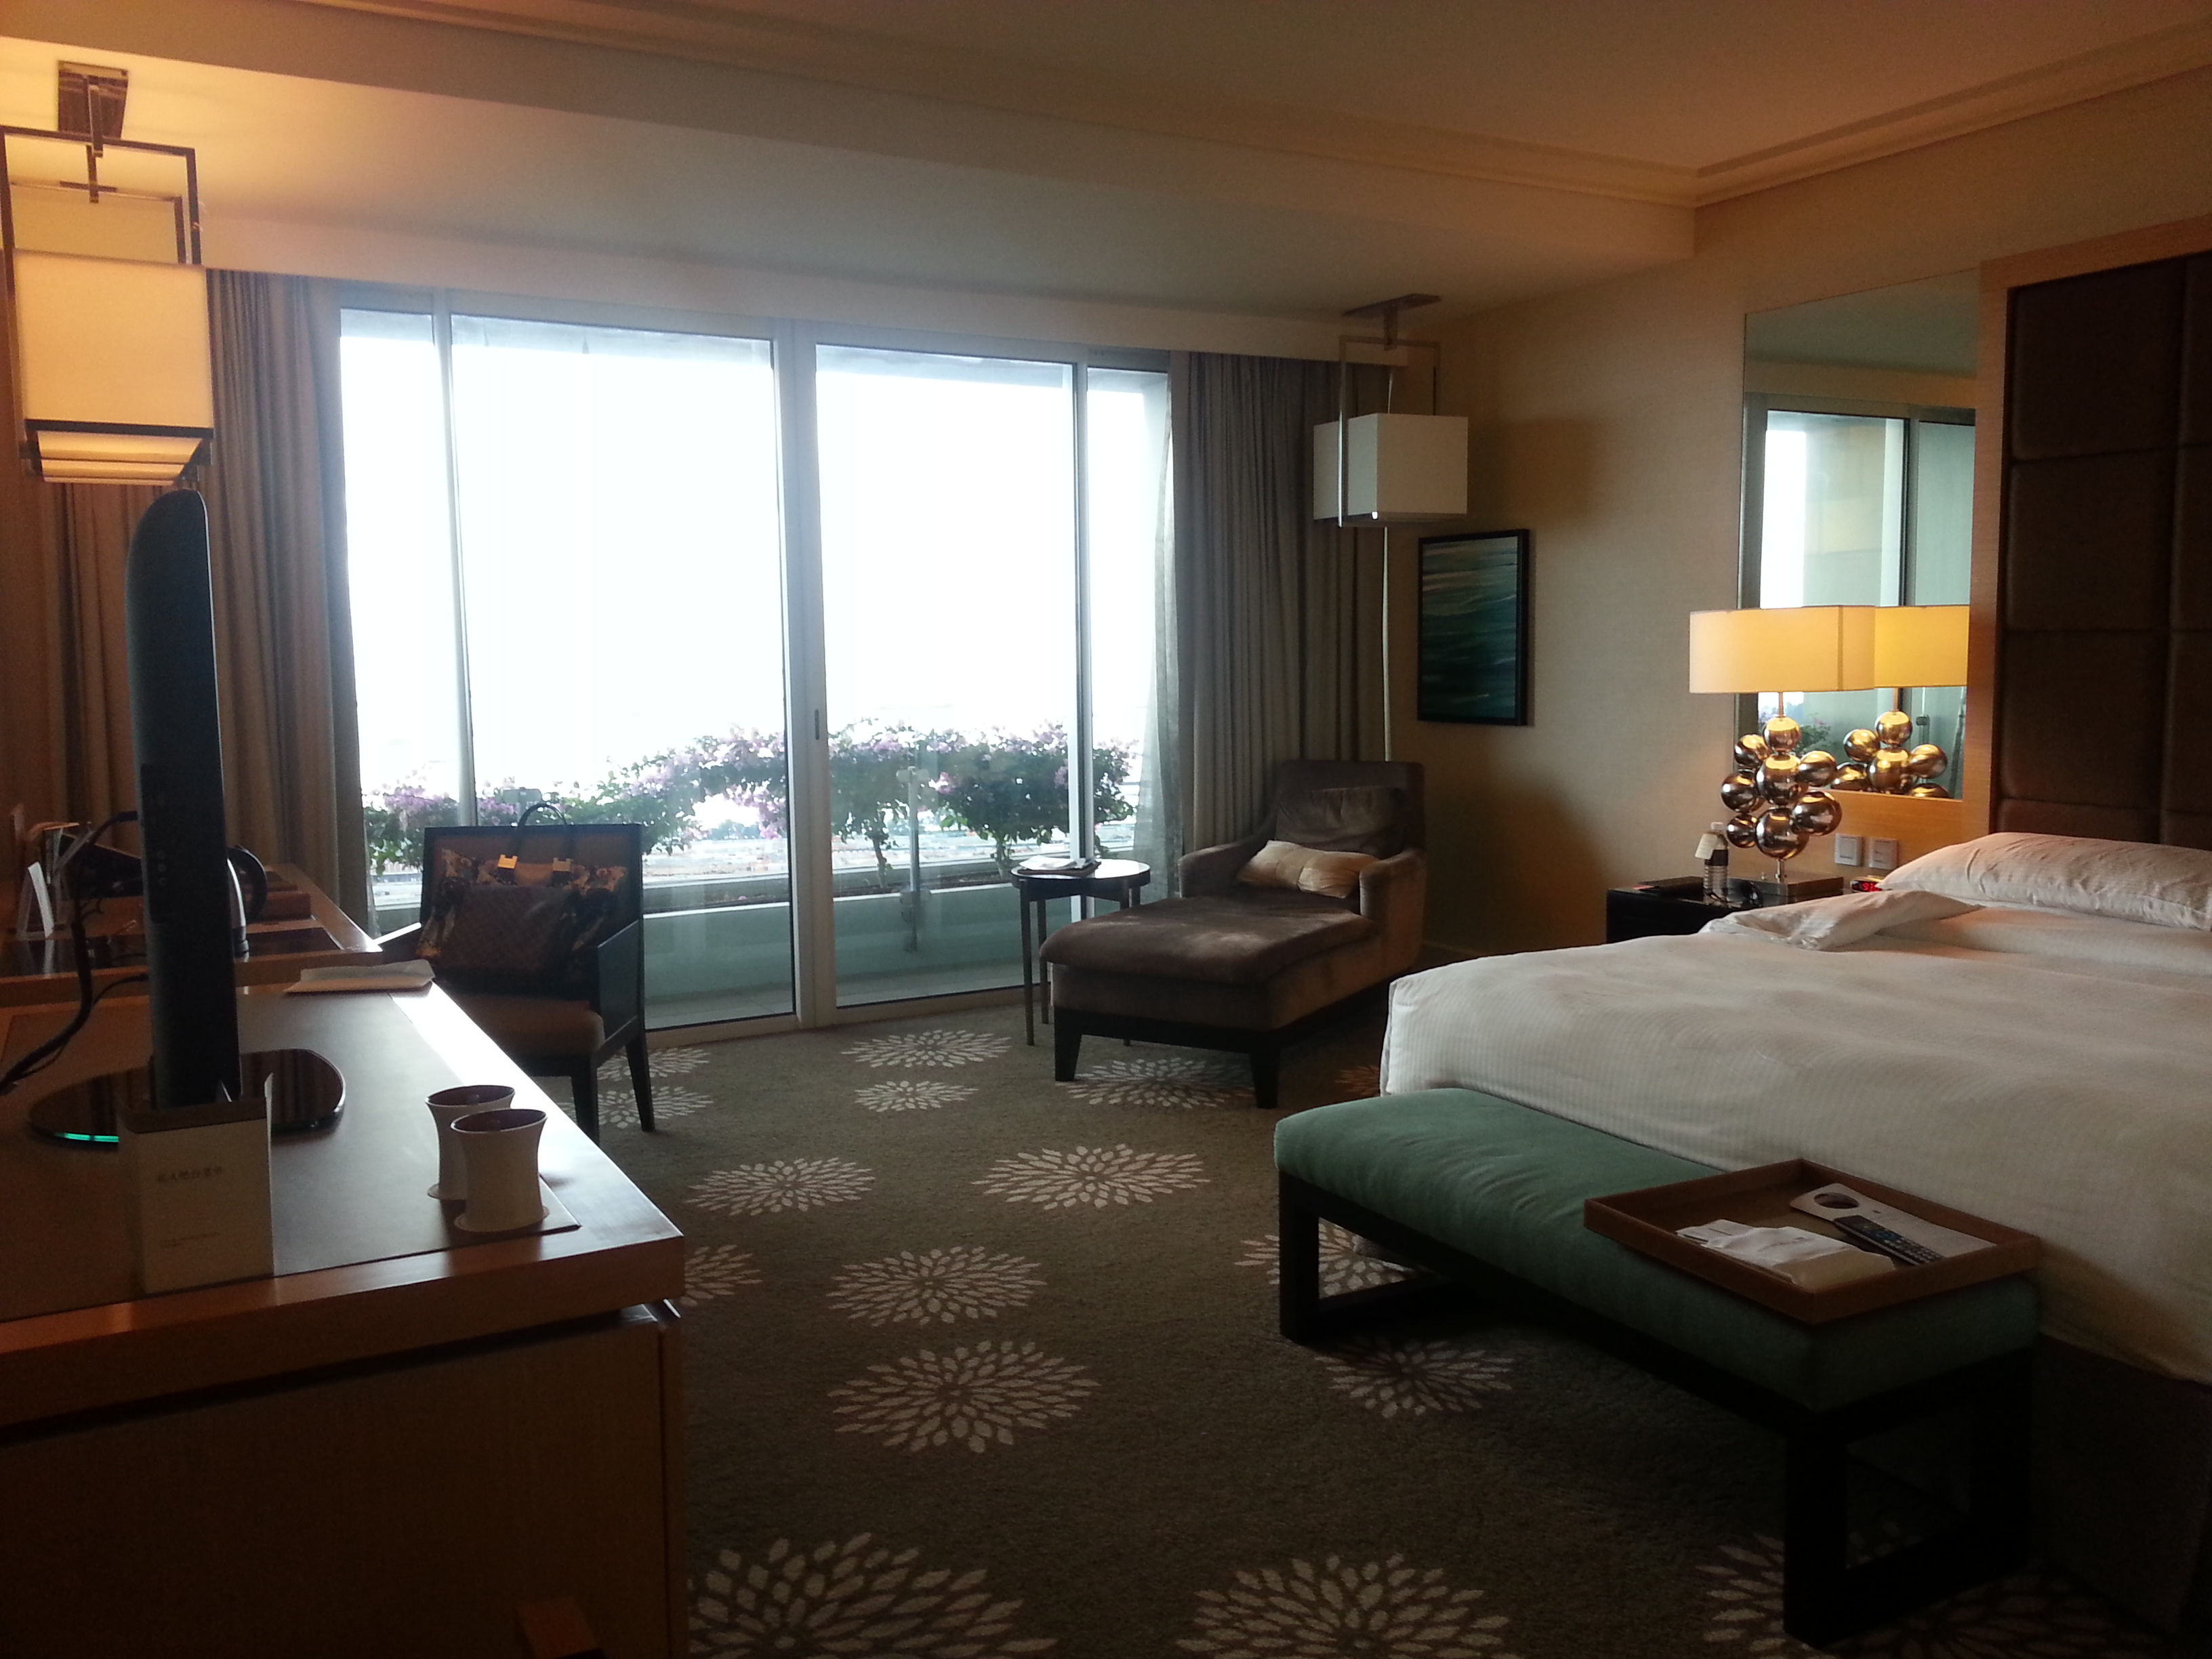 Best Price on Hotel Marina Bay Sands in Singapore, Singapore